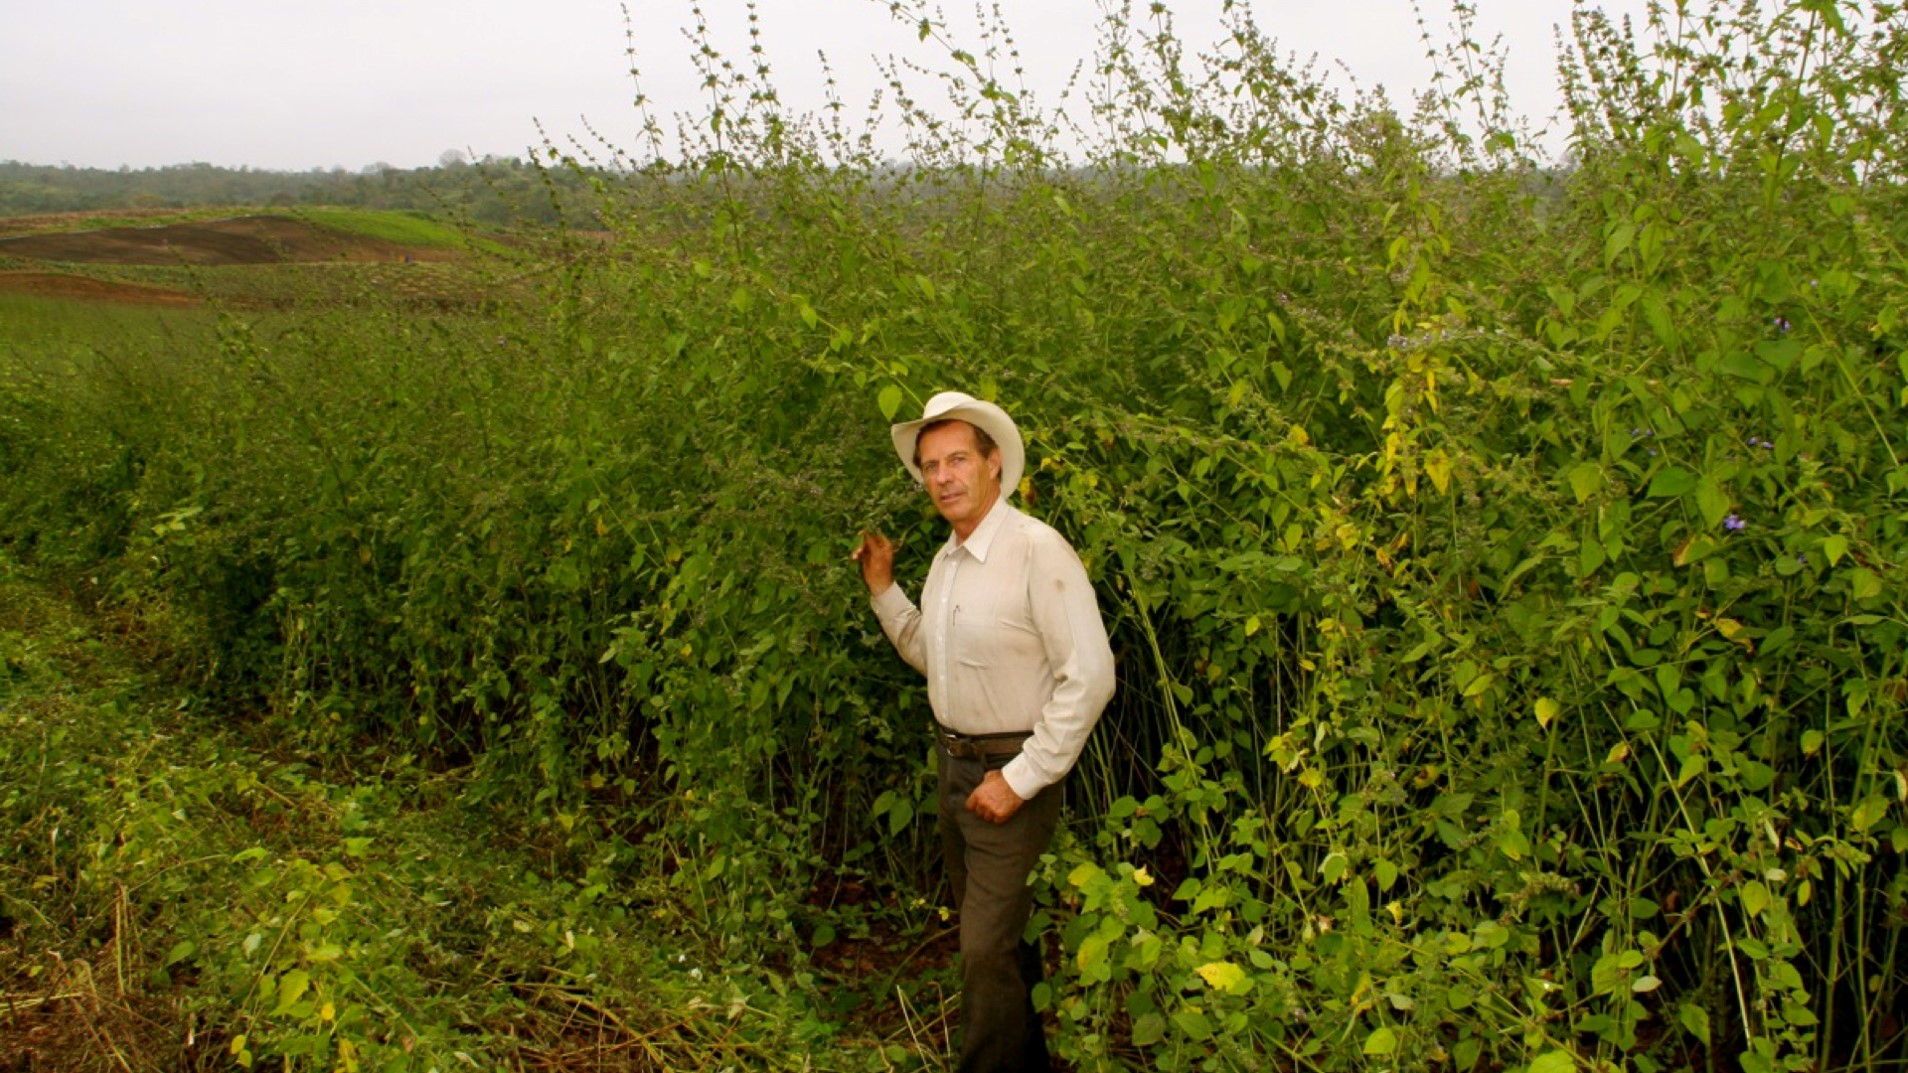 Gary is standing next to the plant Dorado Azul that he discovered and tested. It is now growing on the Young Living farm in Ecuador.